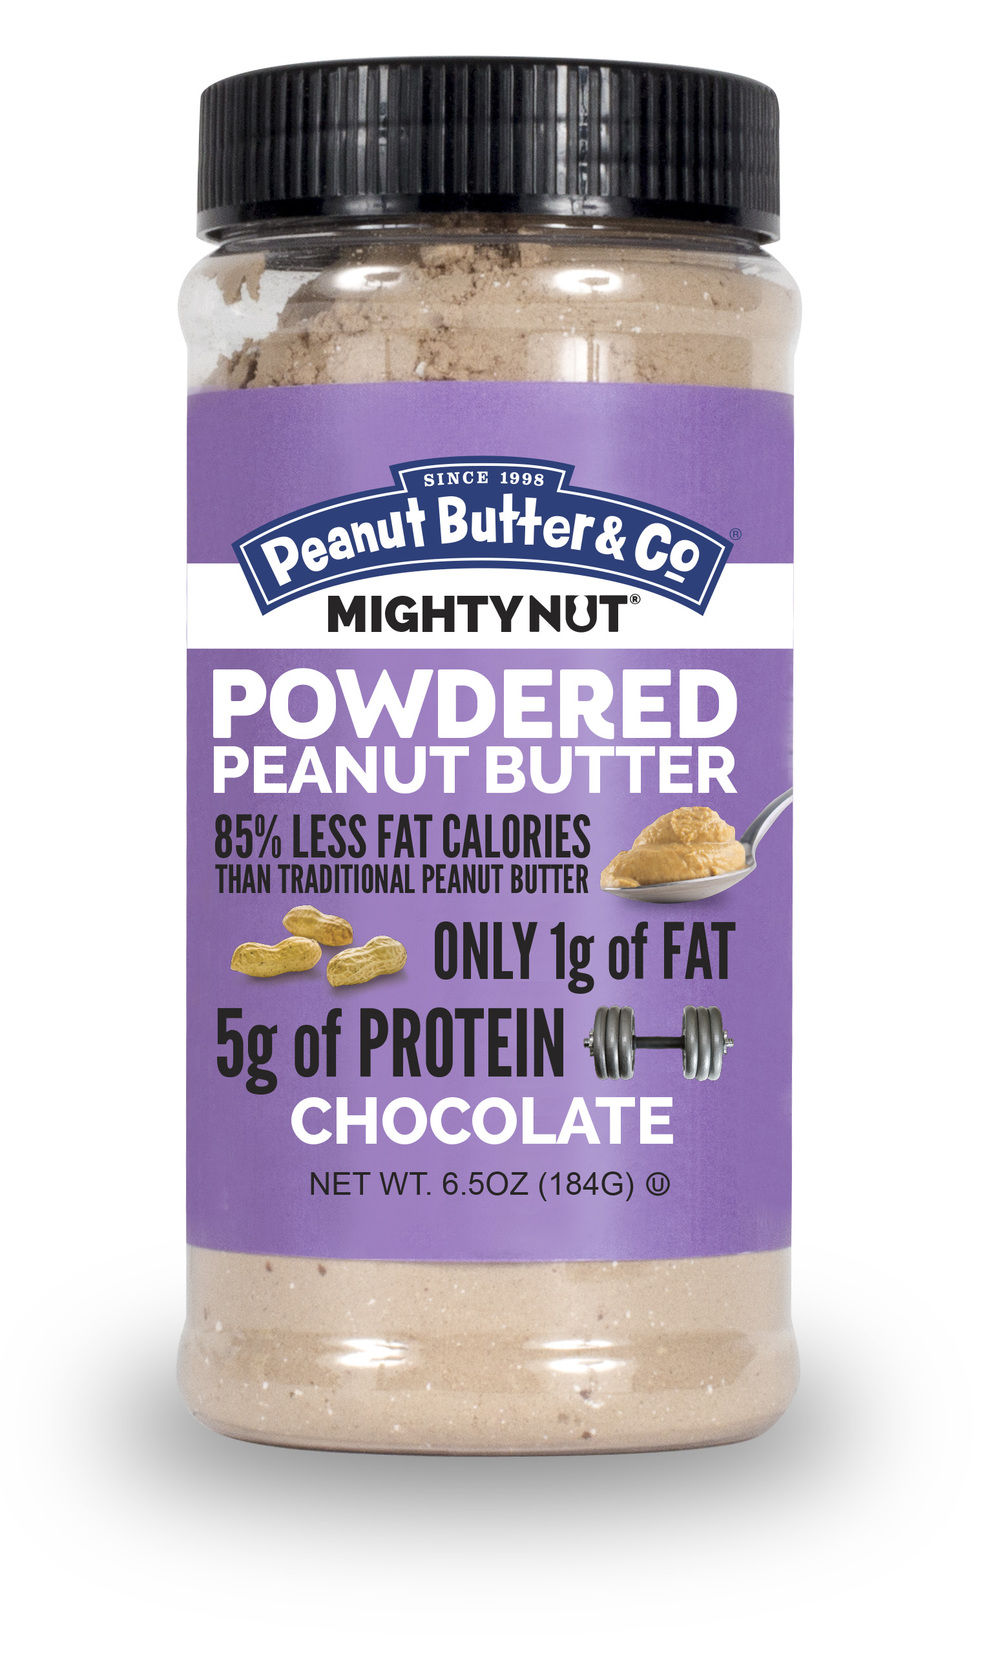 MightyNut-chocolate-Powdered-peanut-butter.jpg